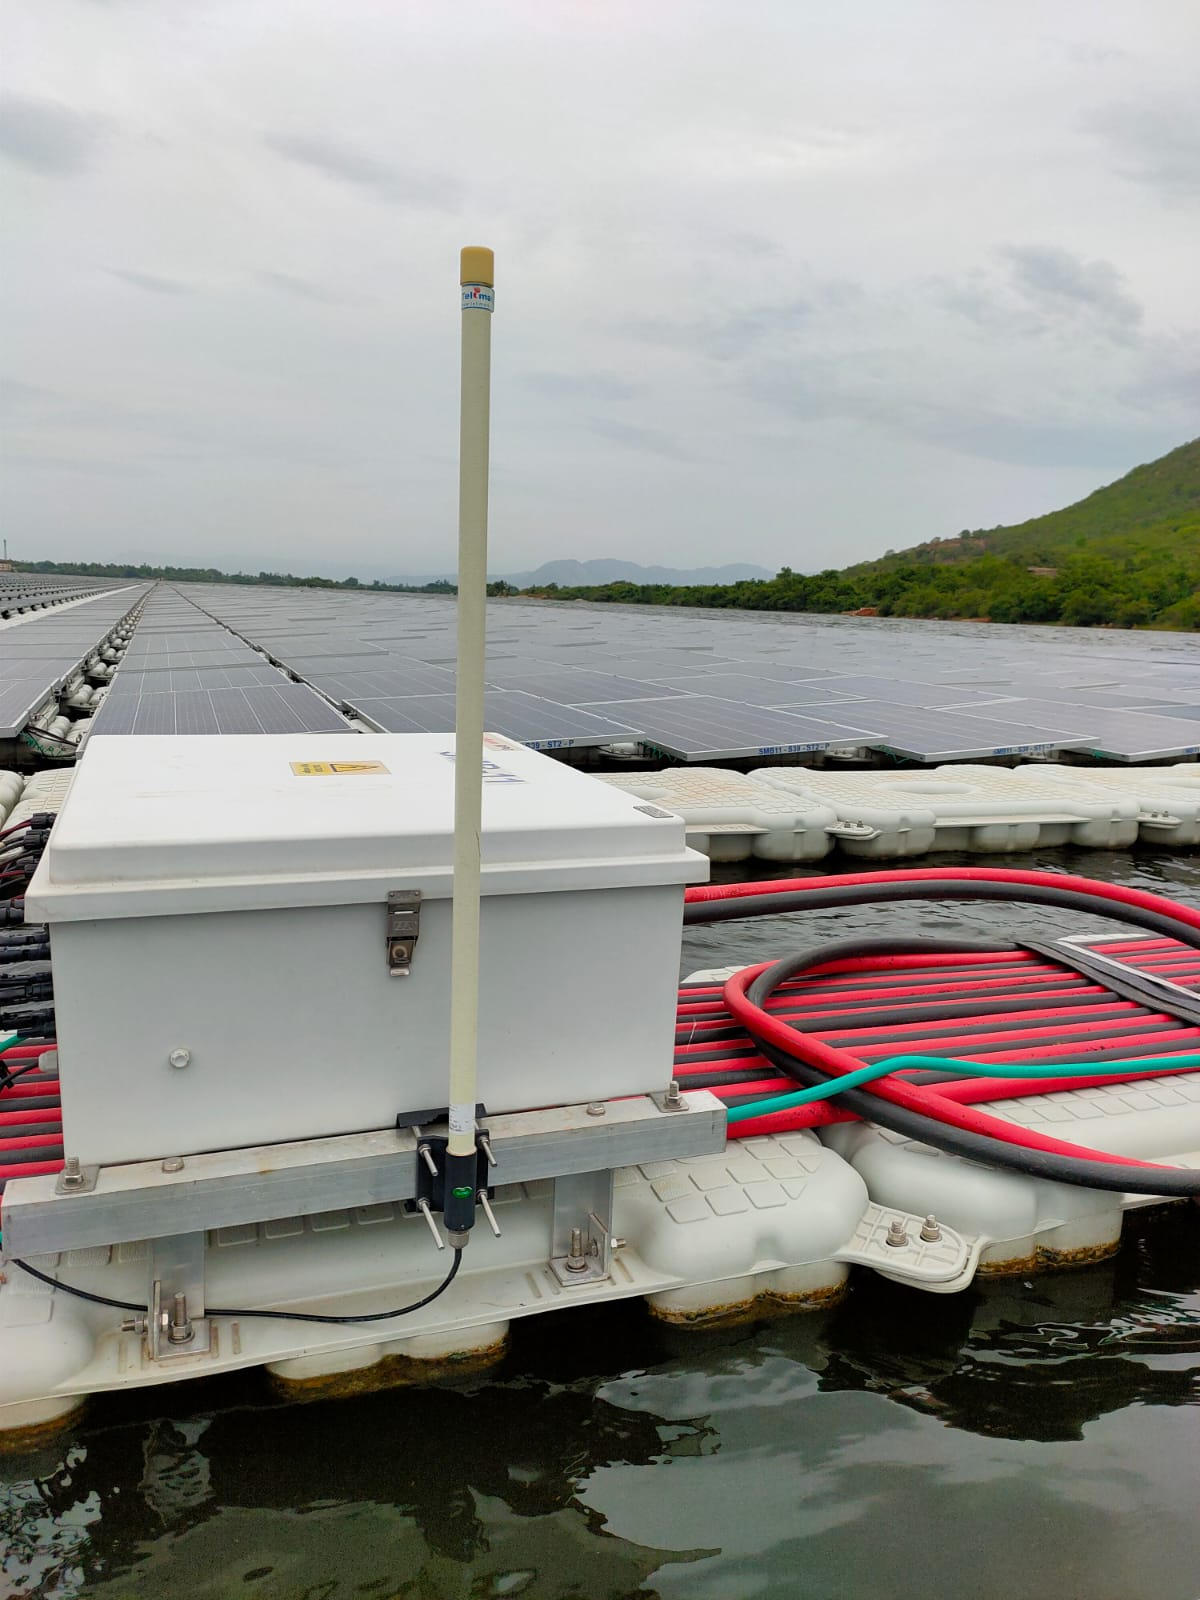 https://www.advanticsys.com/wp-content/uploads/2020/10/4mwp-floating-solar-pv-project-in-andhra-pradesh_photo3.jpeg